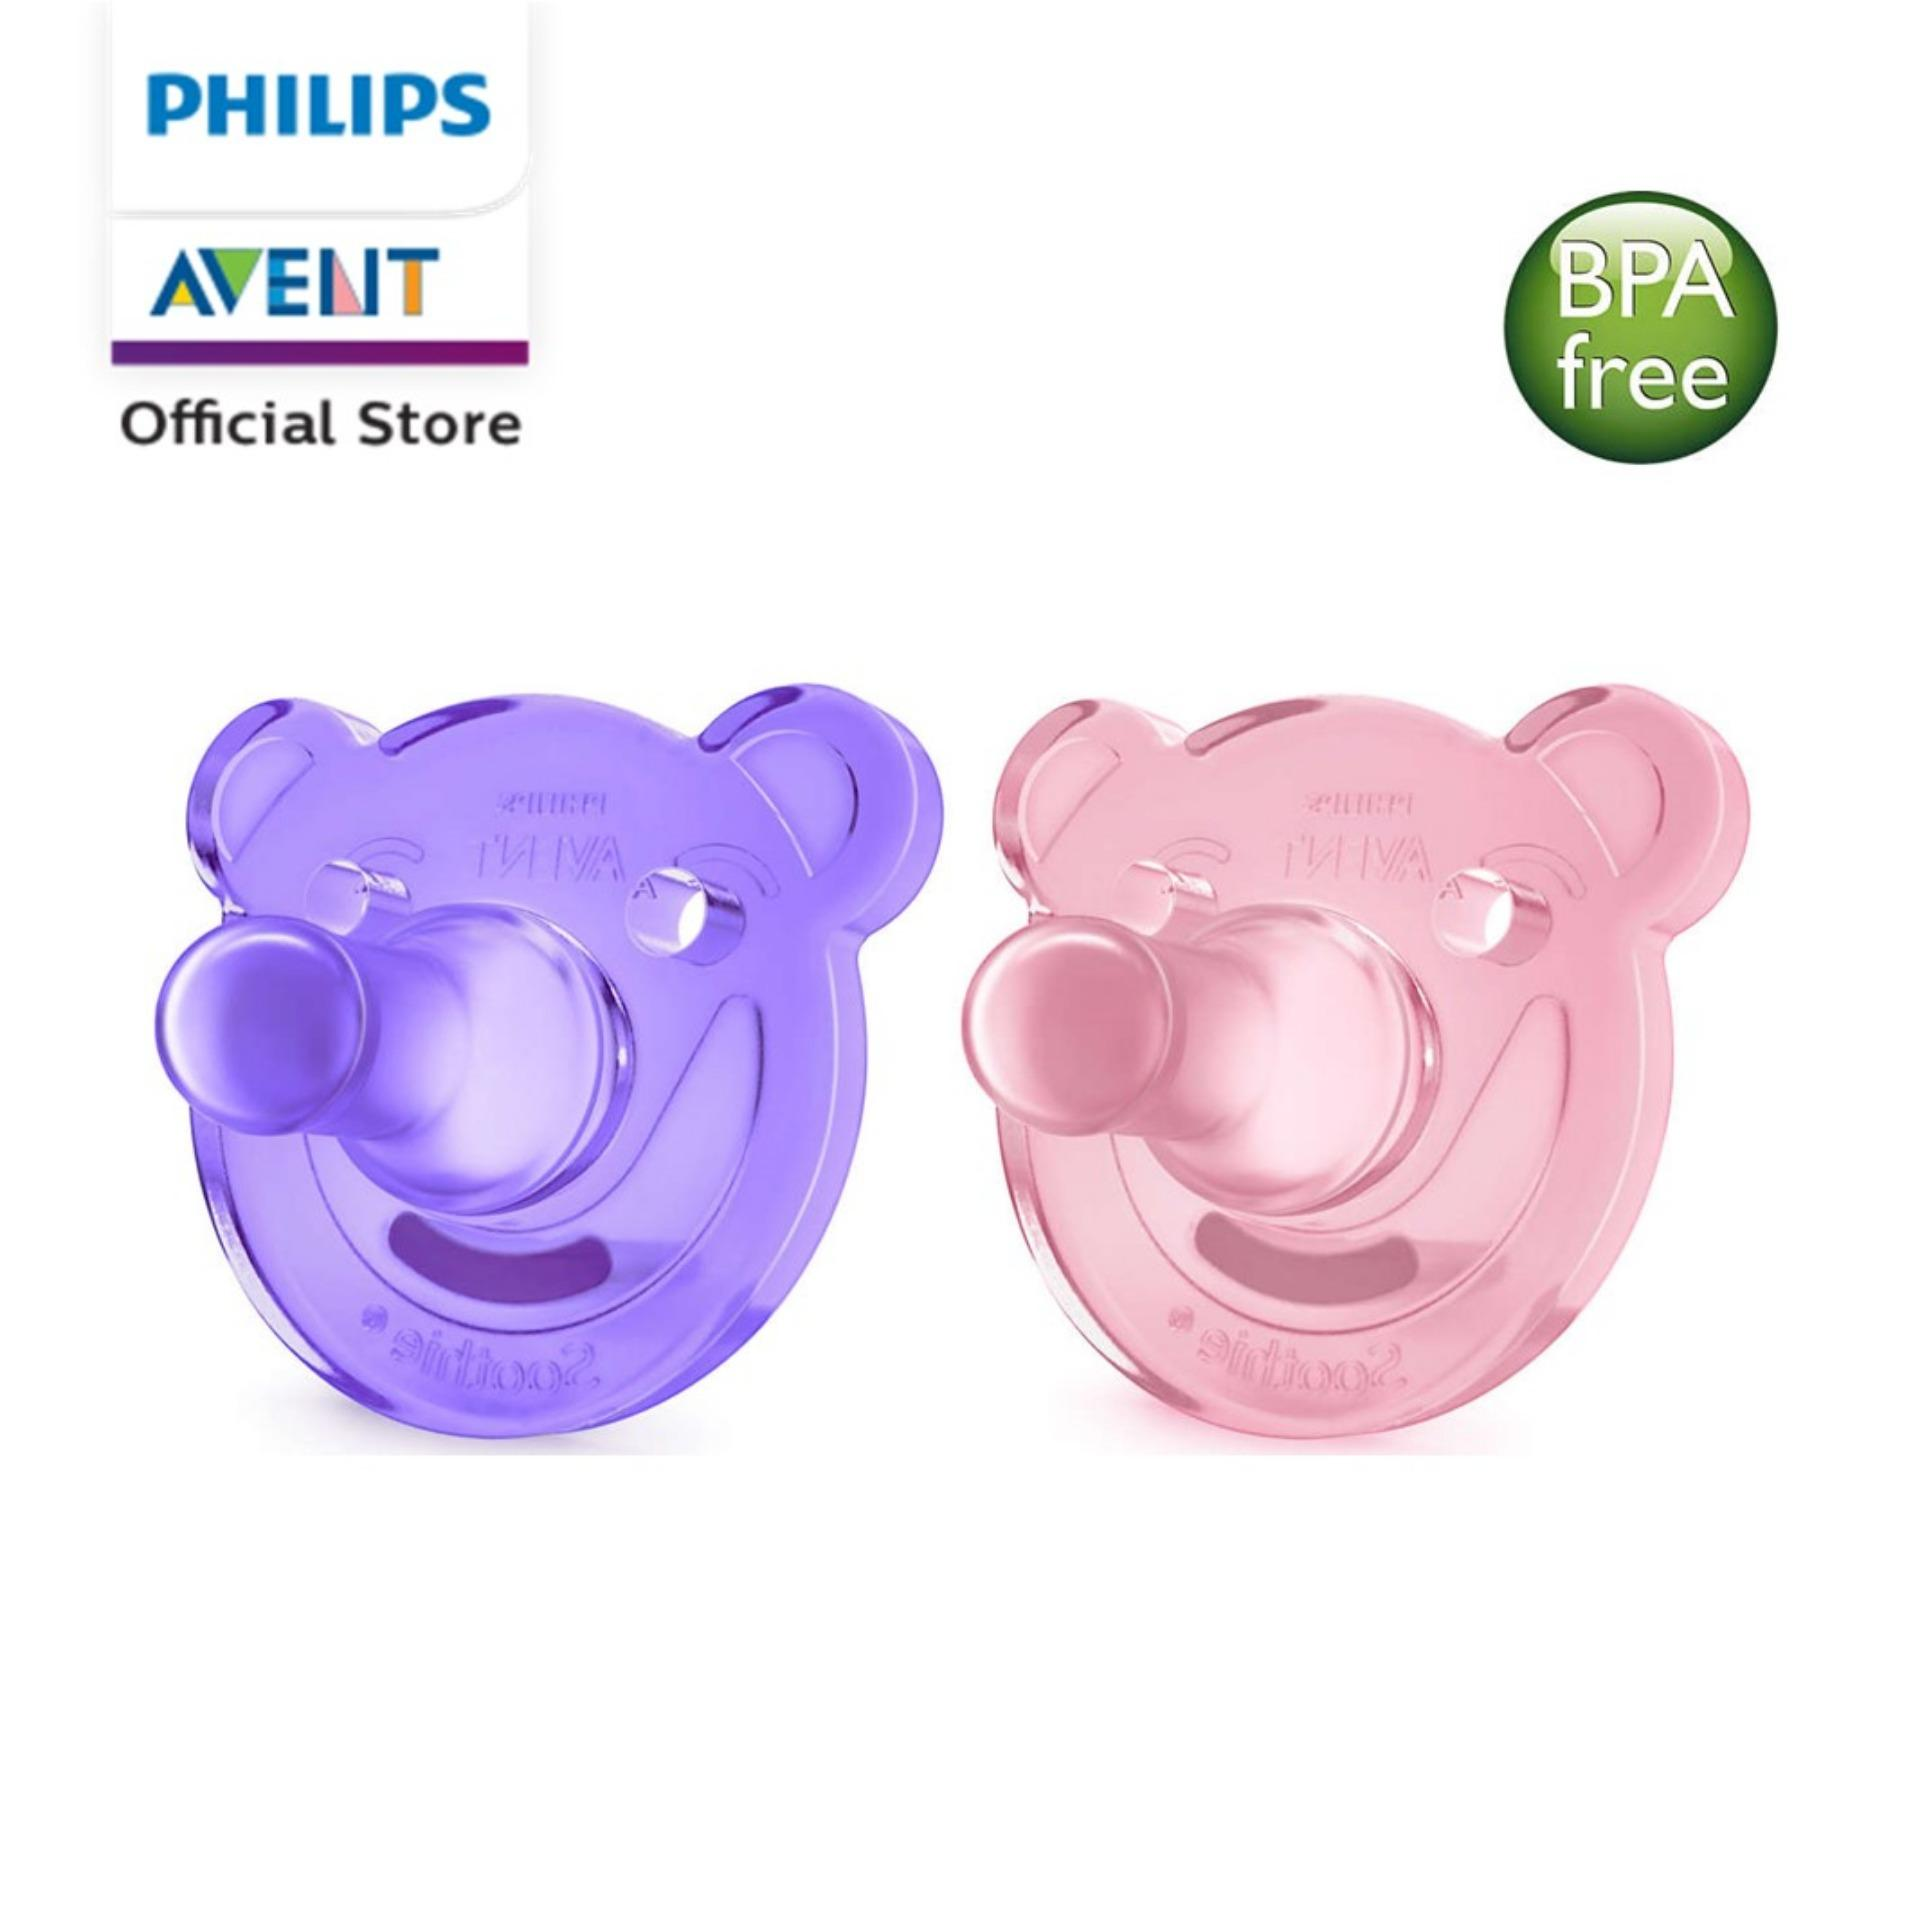 Philips Avent Soothie Pacifiers 3-18m Purple By Philips Avent Official Store.